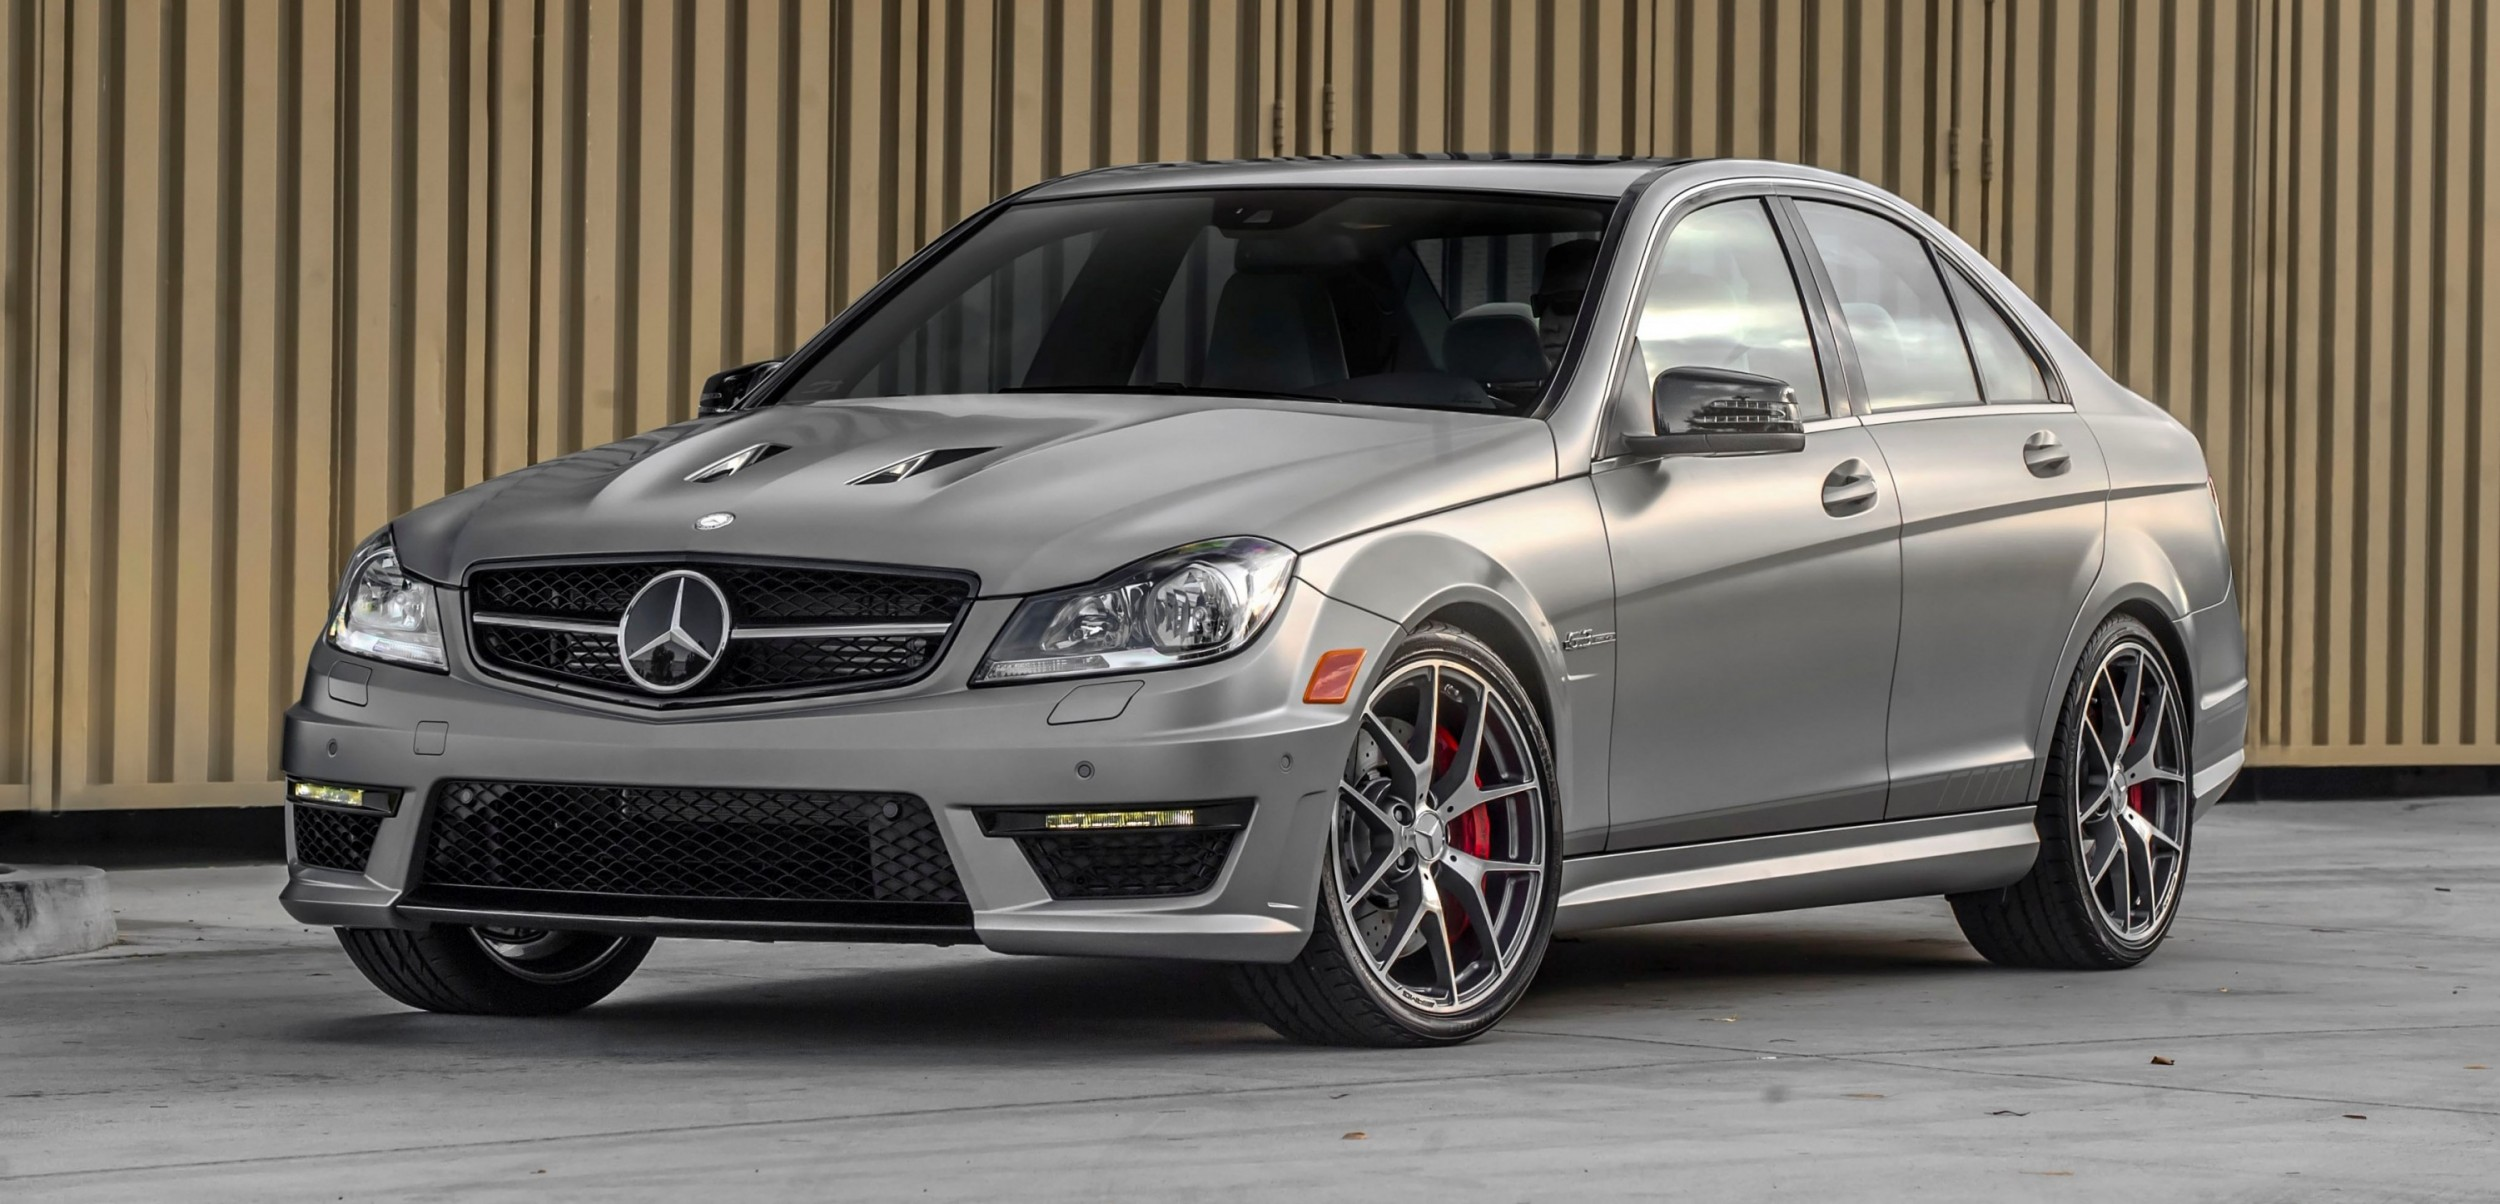 Mercedes c63 amg 507 sedan price for 2014 mercedes benz c63 amg edition 507 for sale